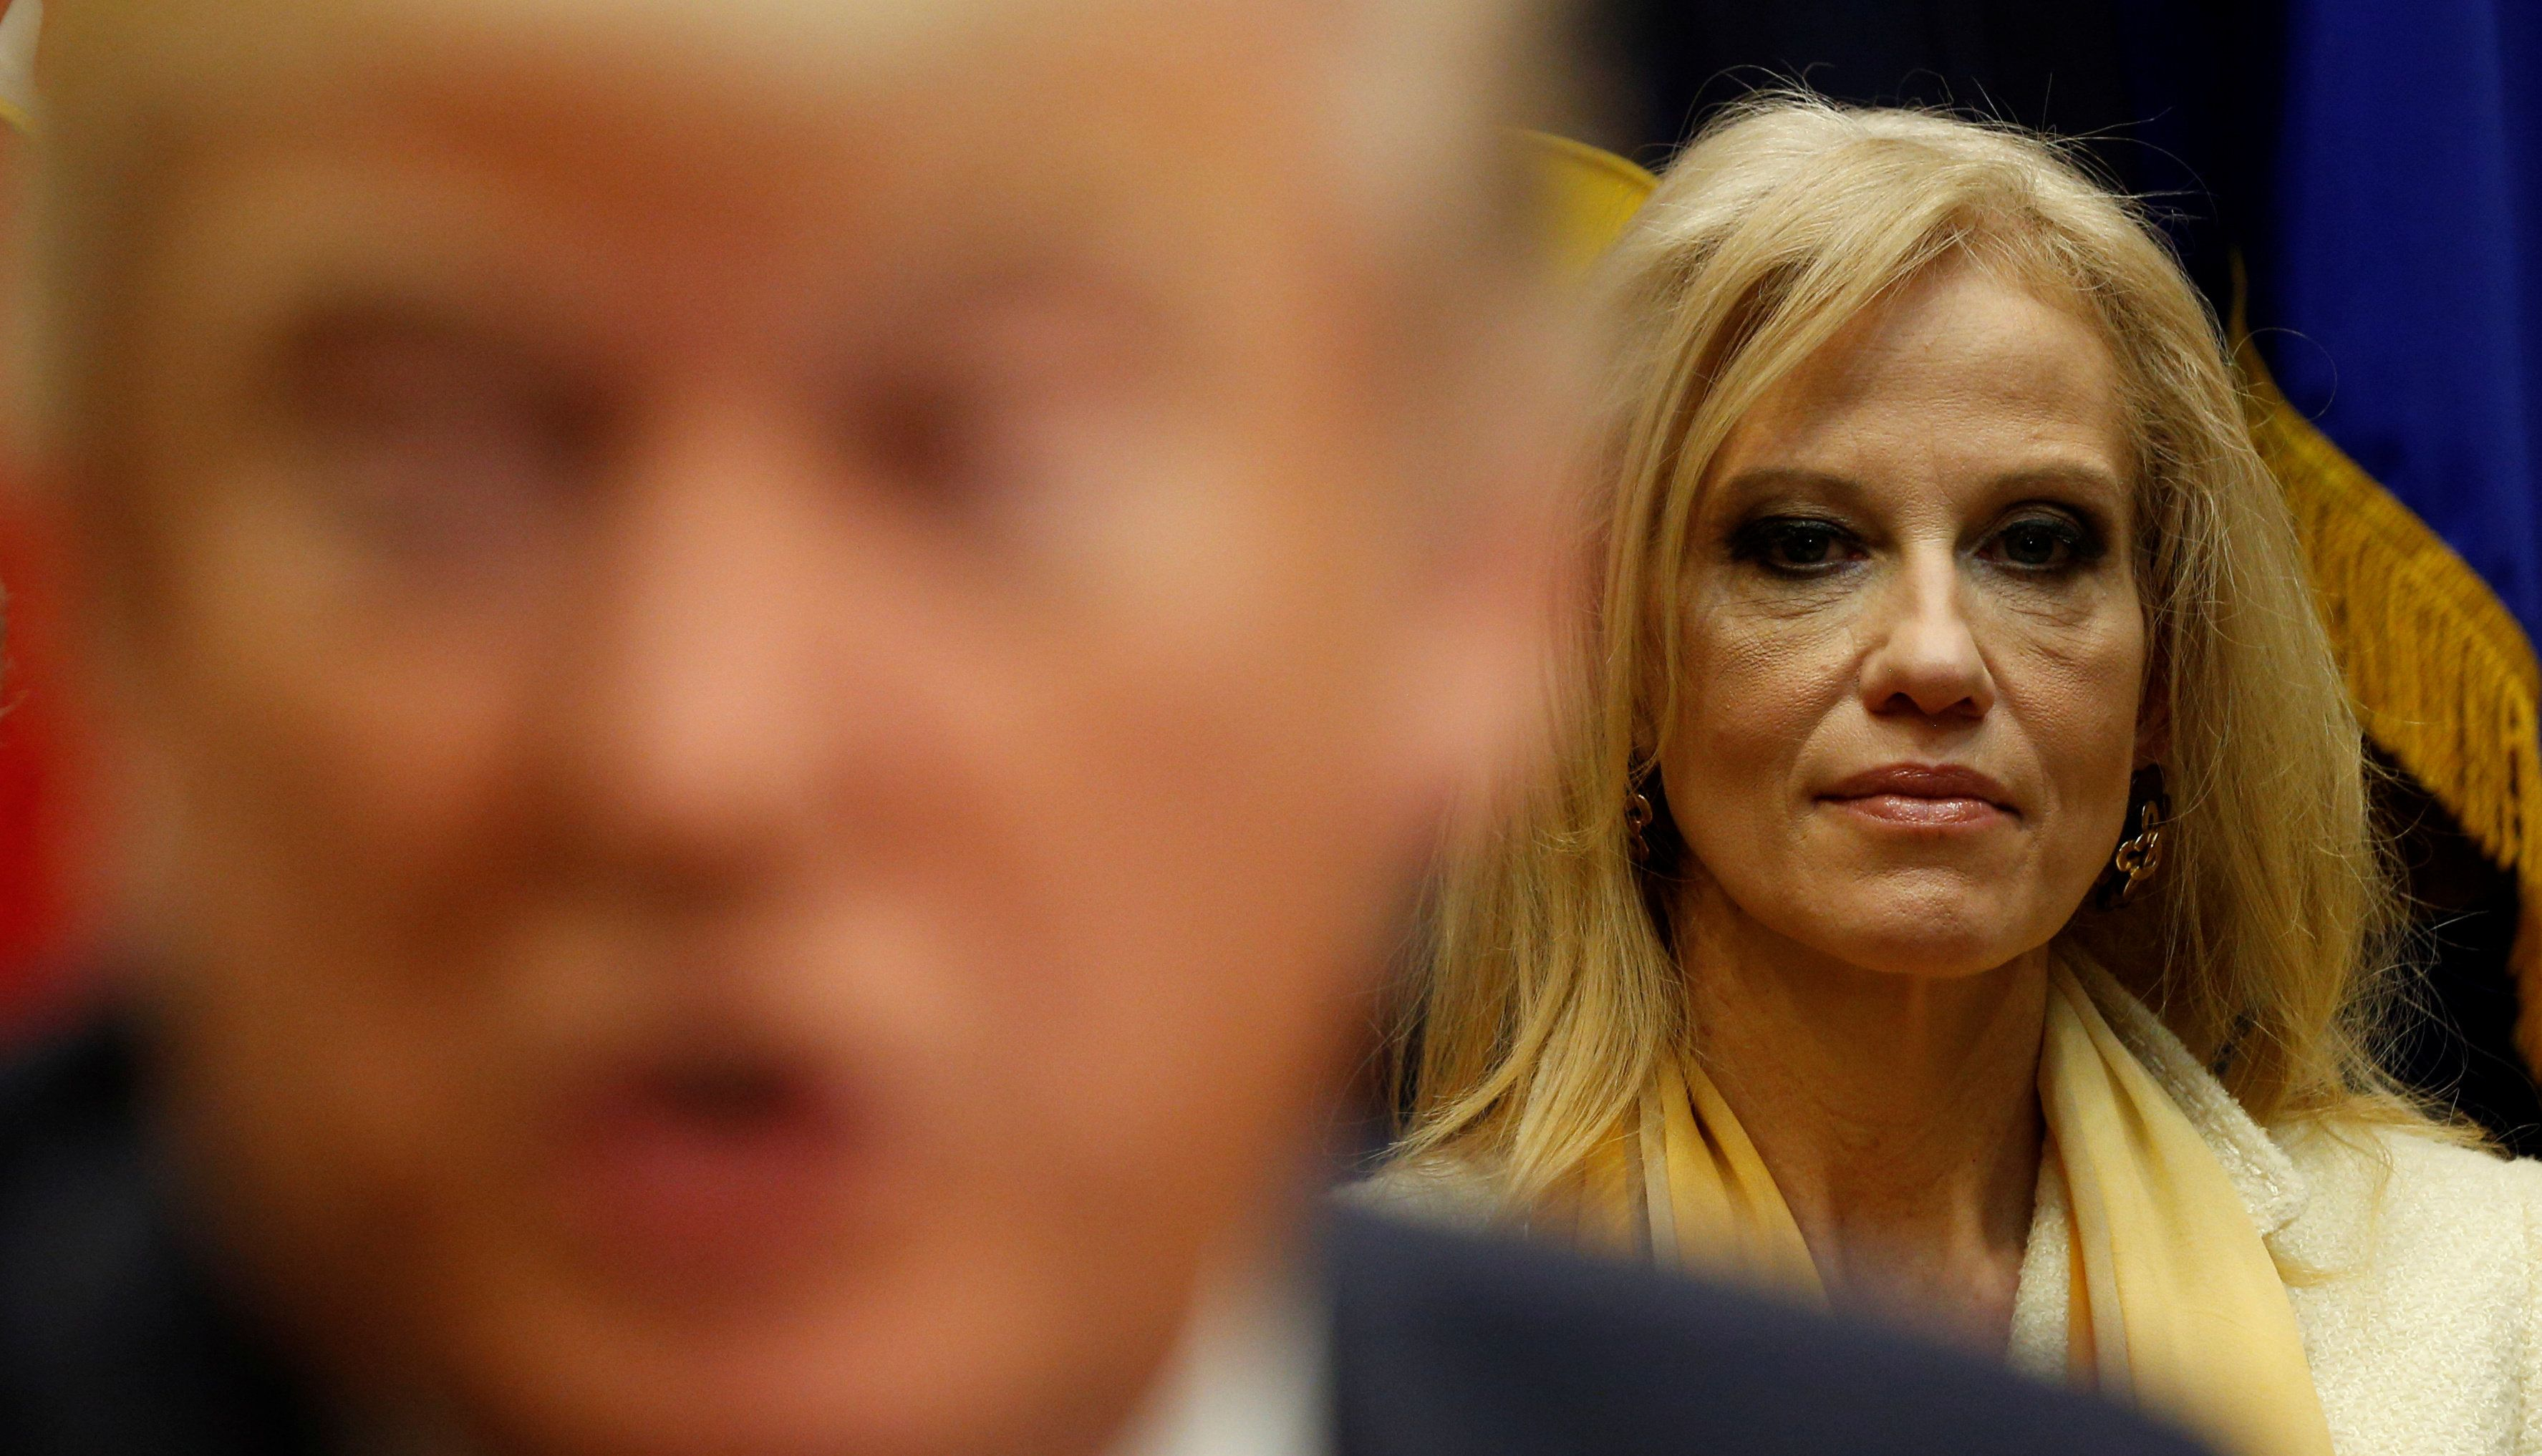 White House advisor Kellyanne Conway listens as U.S. President Donald Trump meets with county sheriffs at the White House in Washington, U.S. February 7, 2017.  REUTERS/Kevin Lamarque